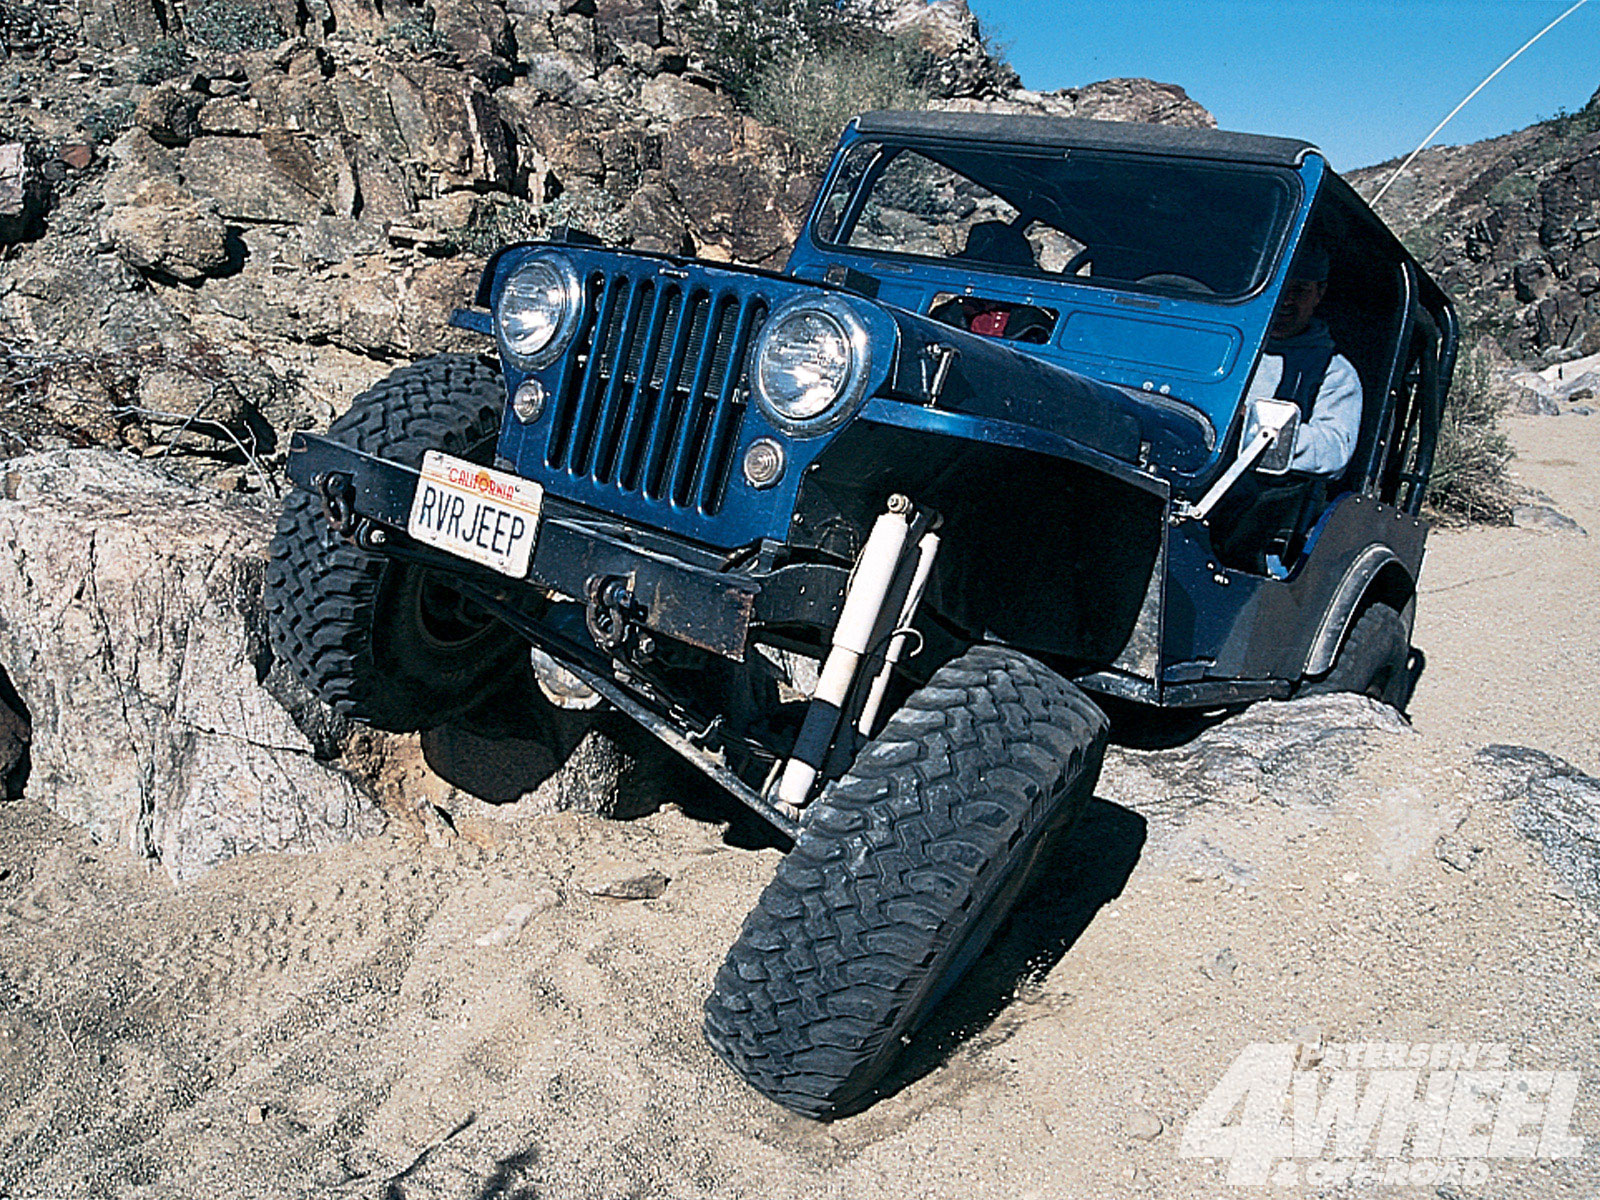 131 9802 06 o+131 9802 fun in the desert+jeep flatfender front rock shot